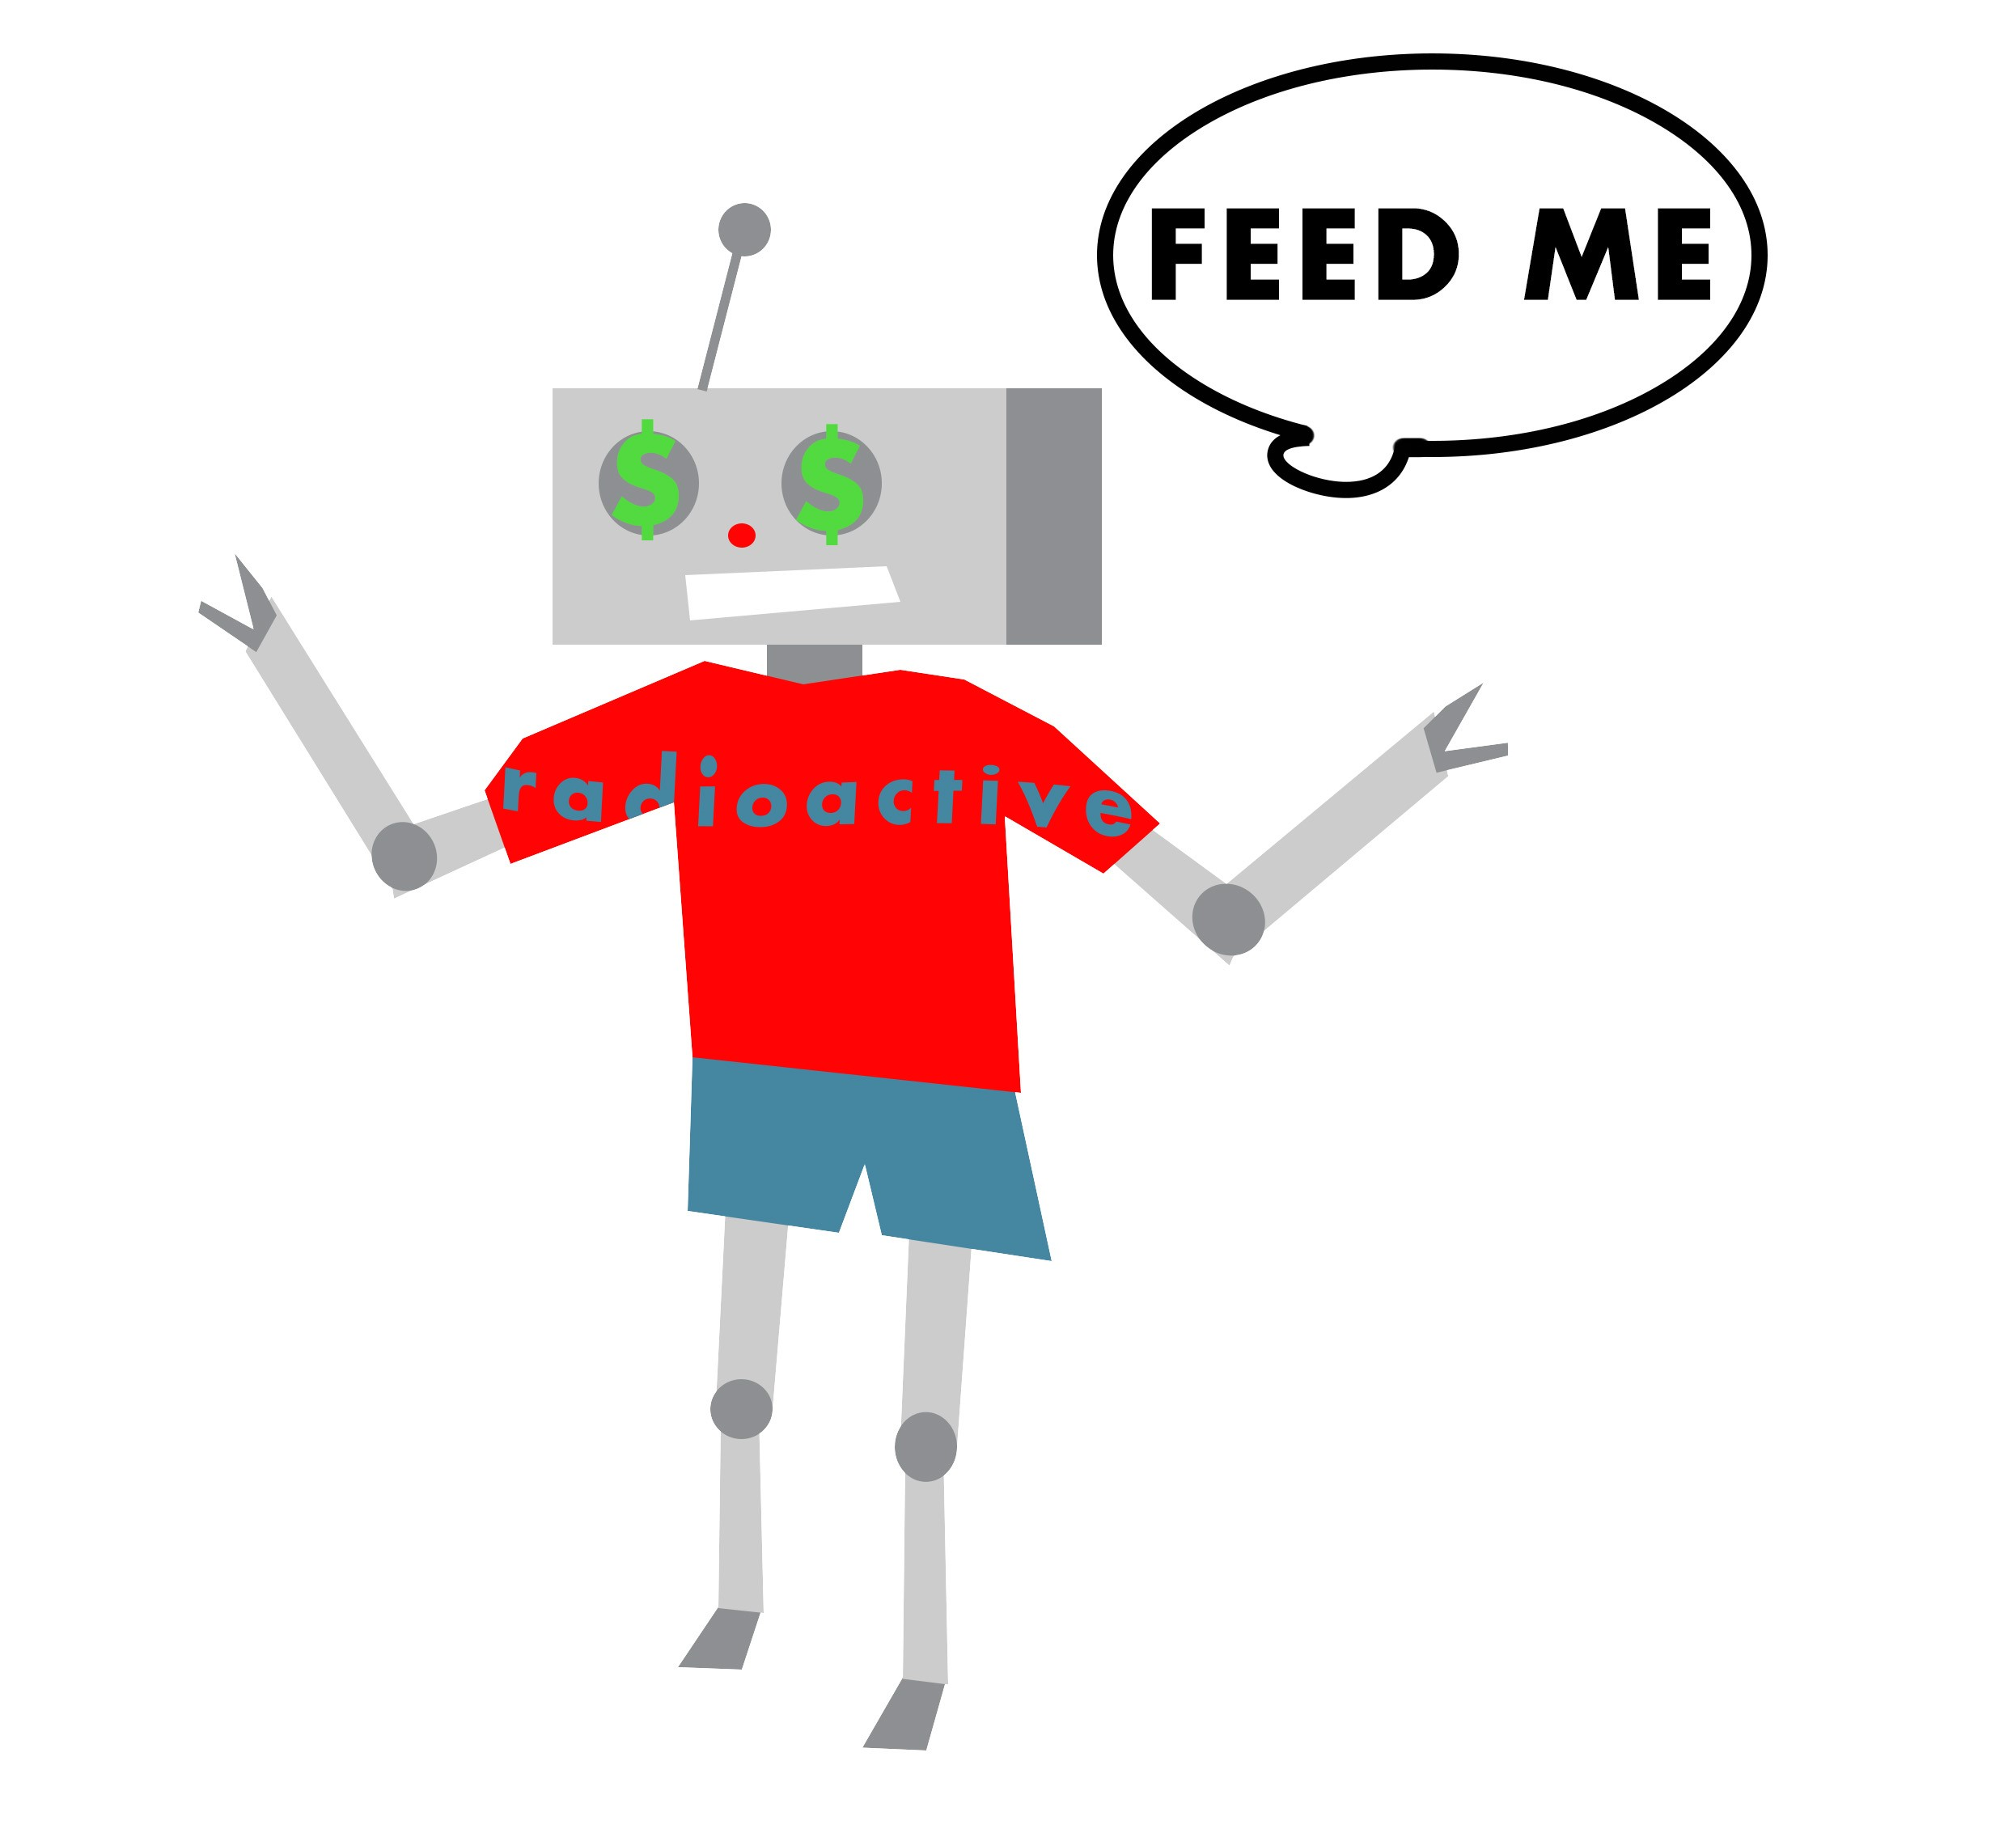 FEED ME graphic